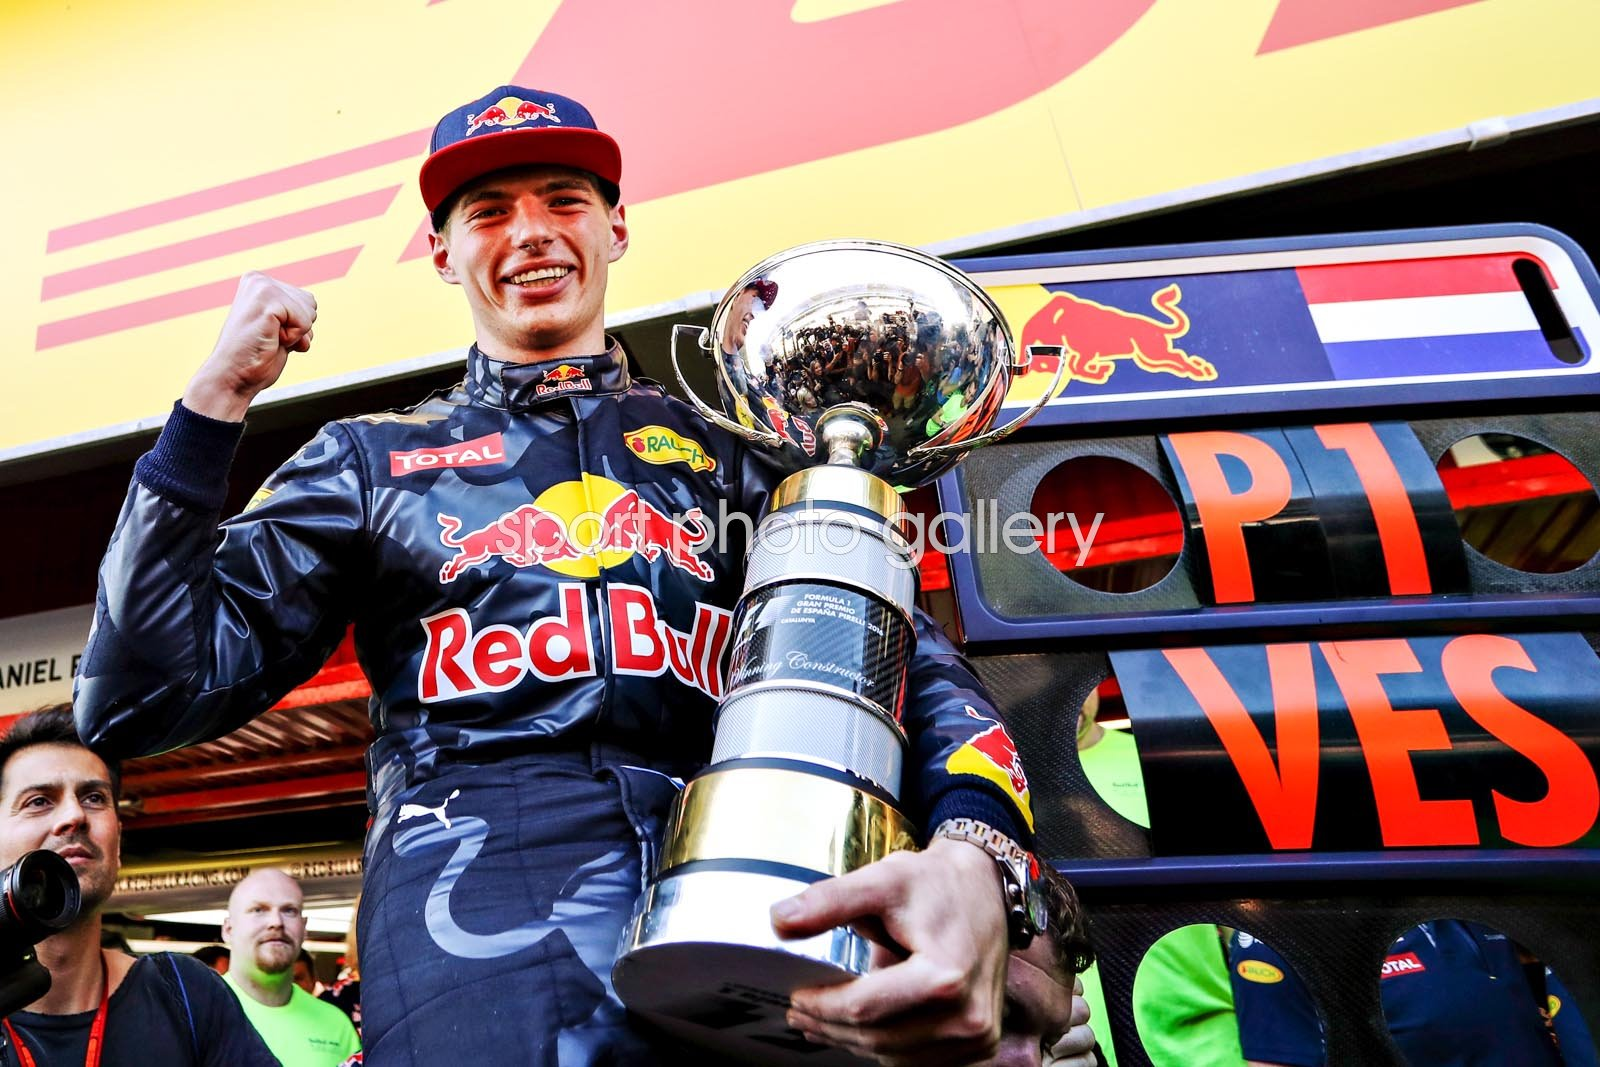 Max Verstappen Netherlands & Red Bull wins Spanish GP 2016